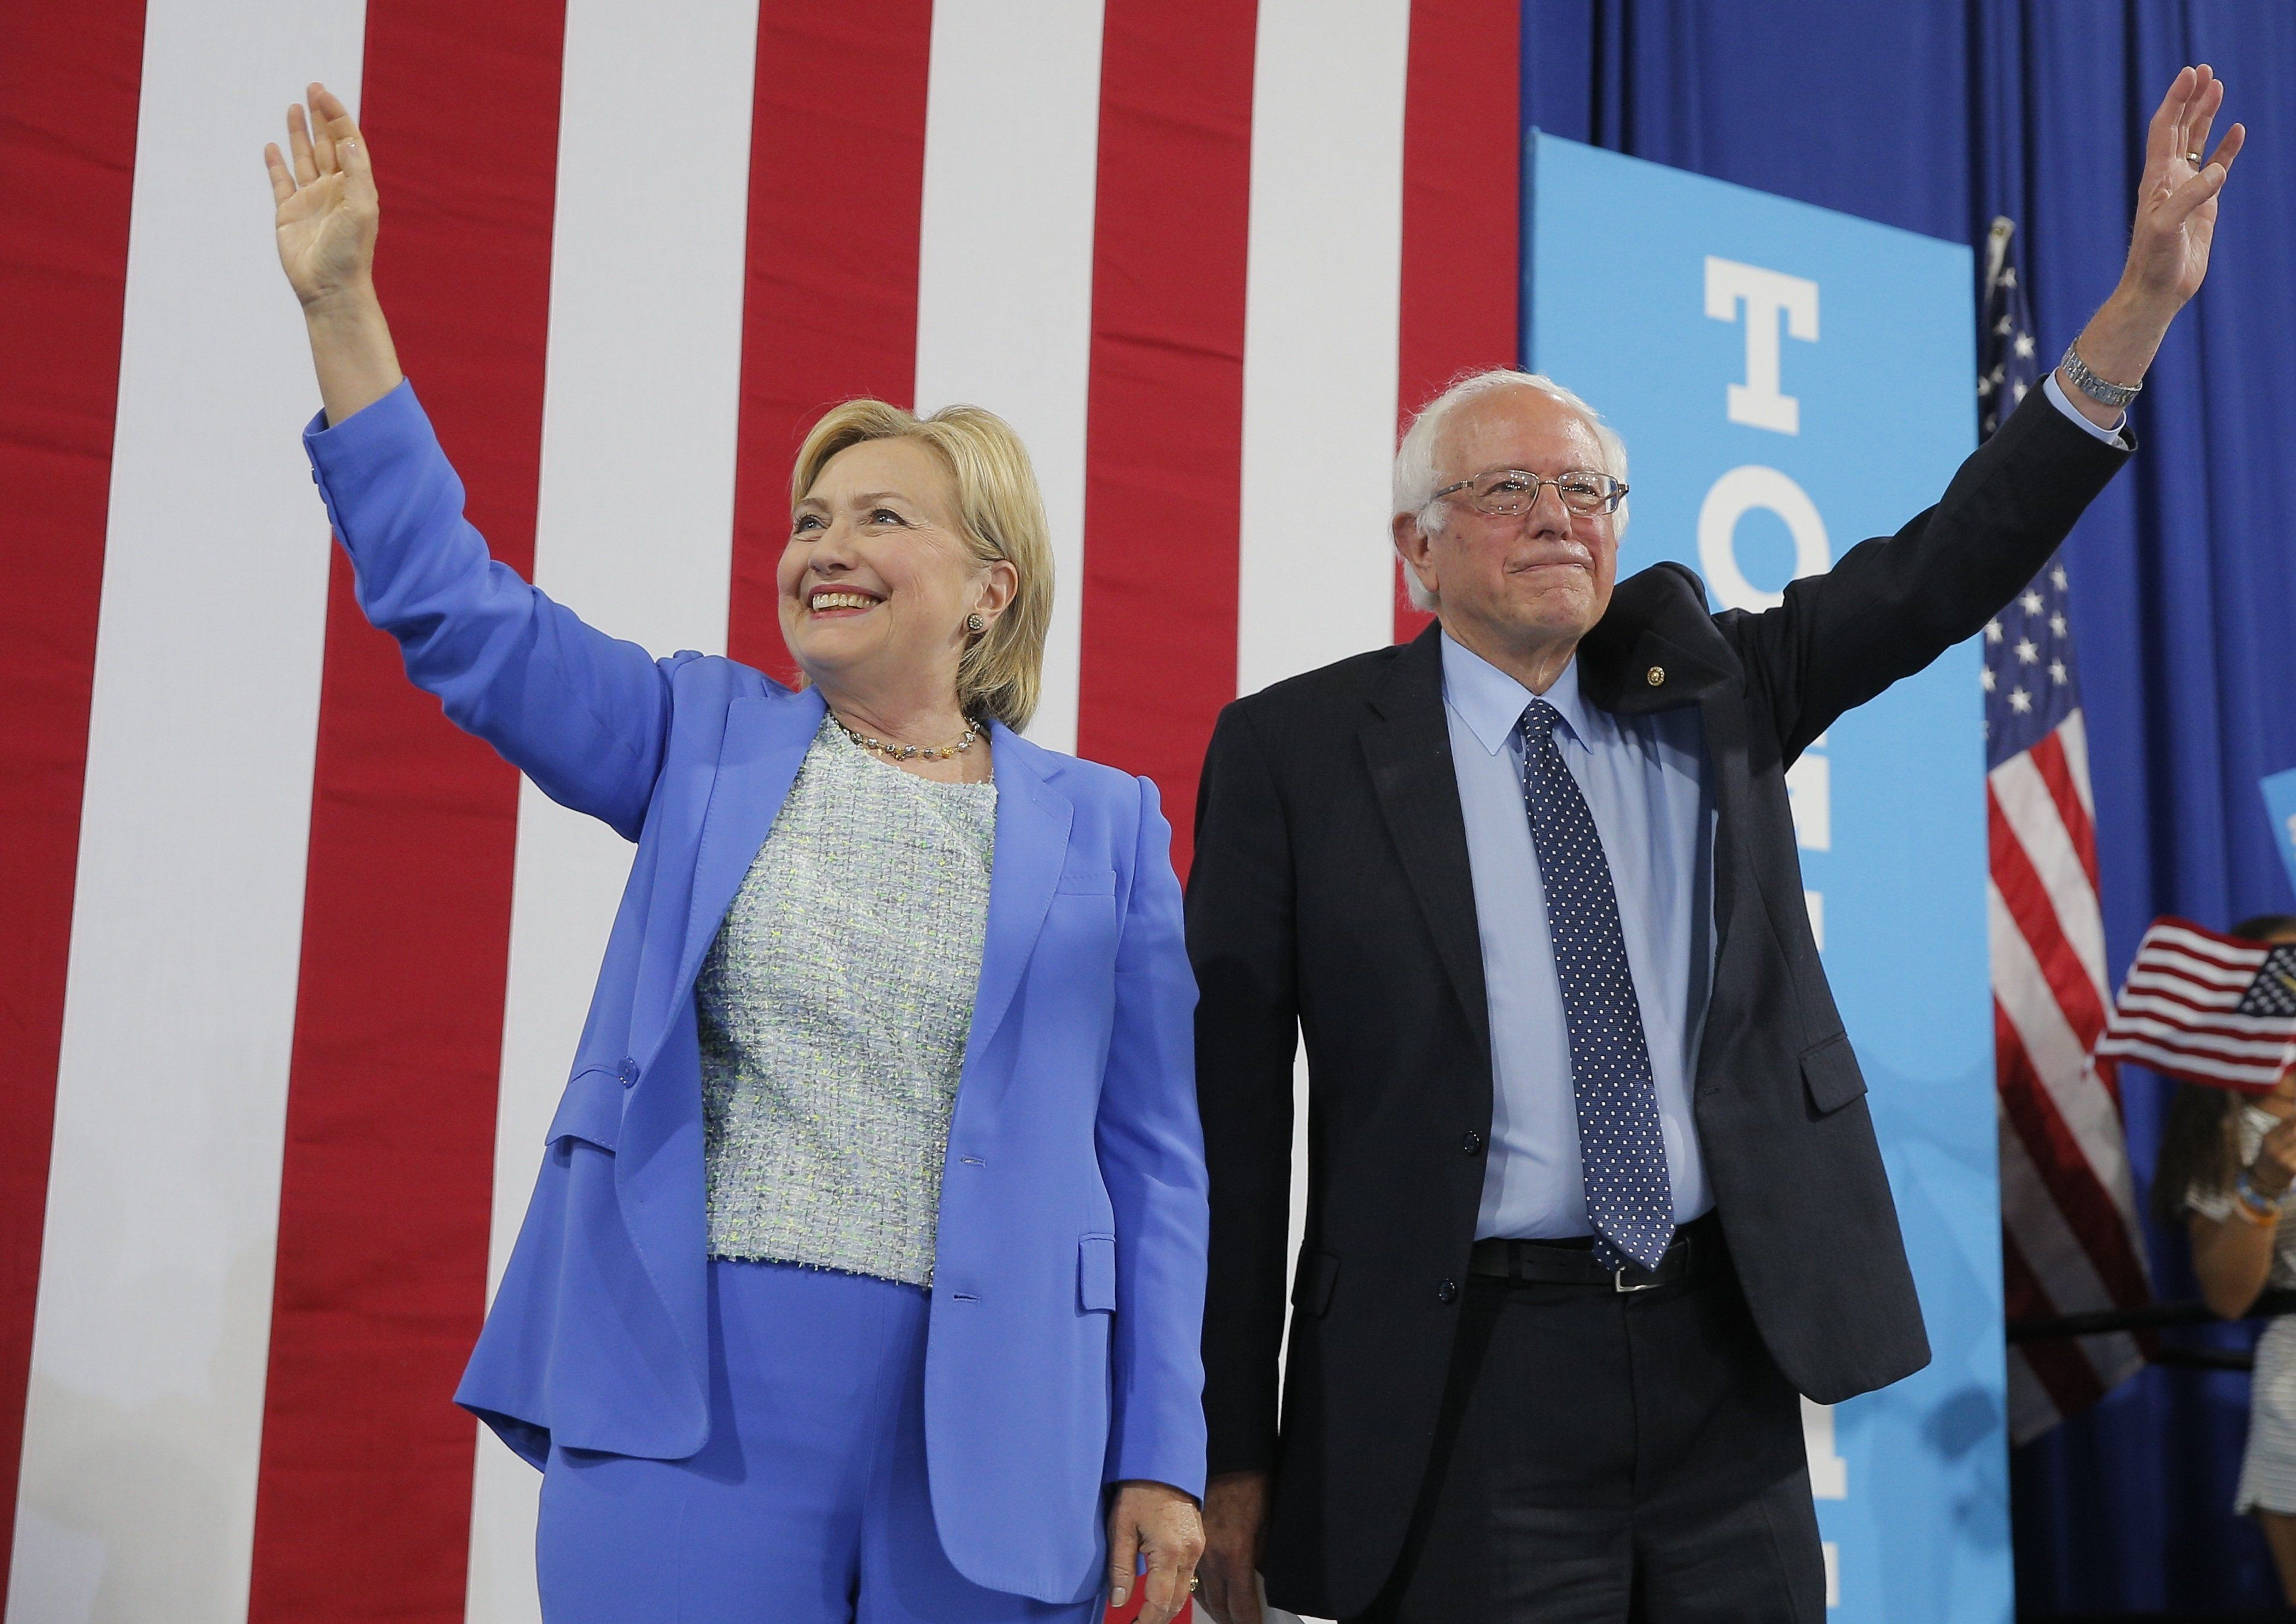 Bernie Sanders' candidacy was far more successful than many pundits